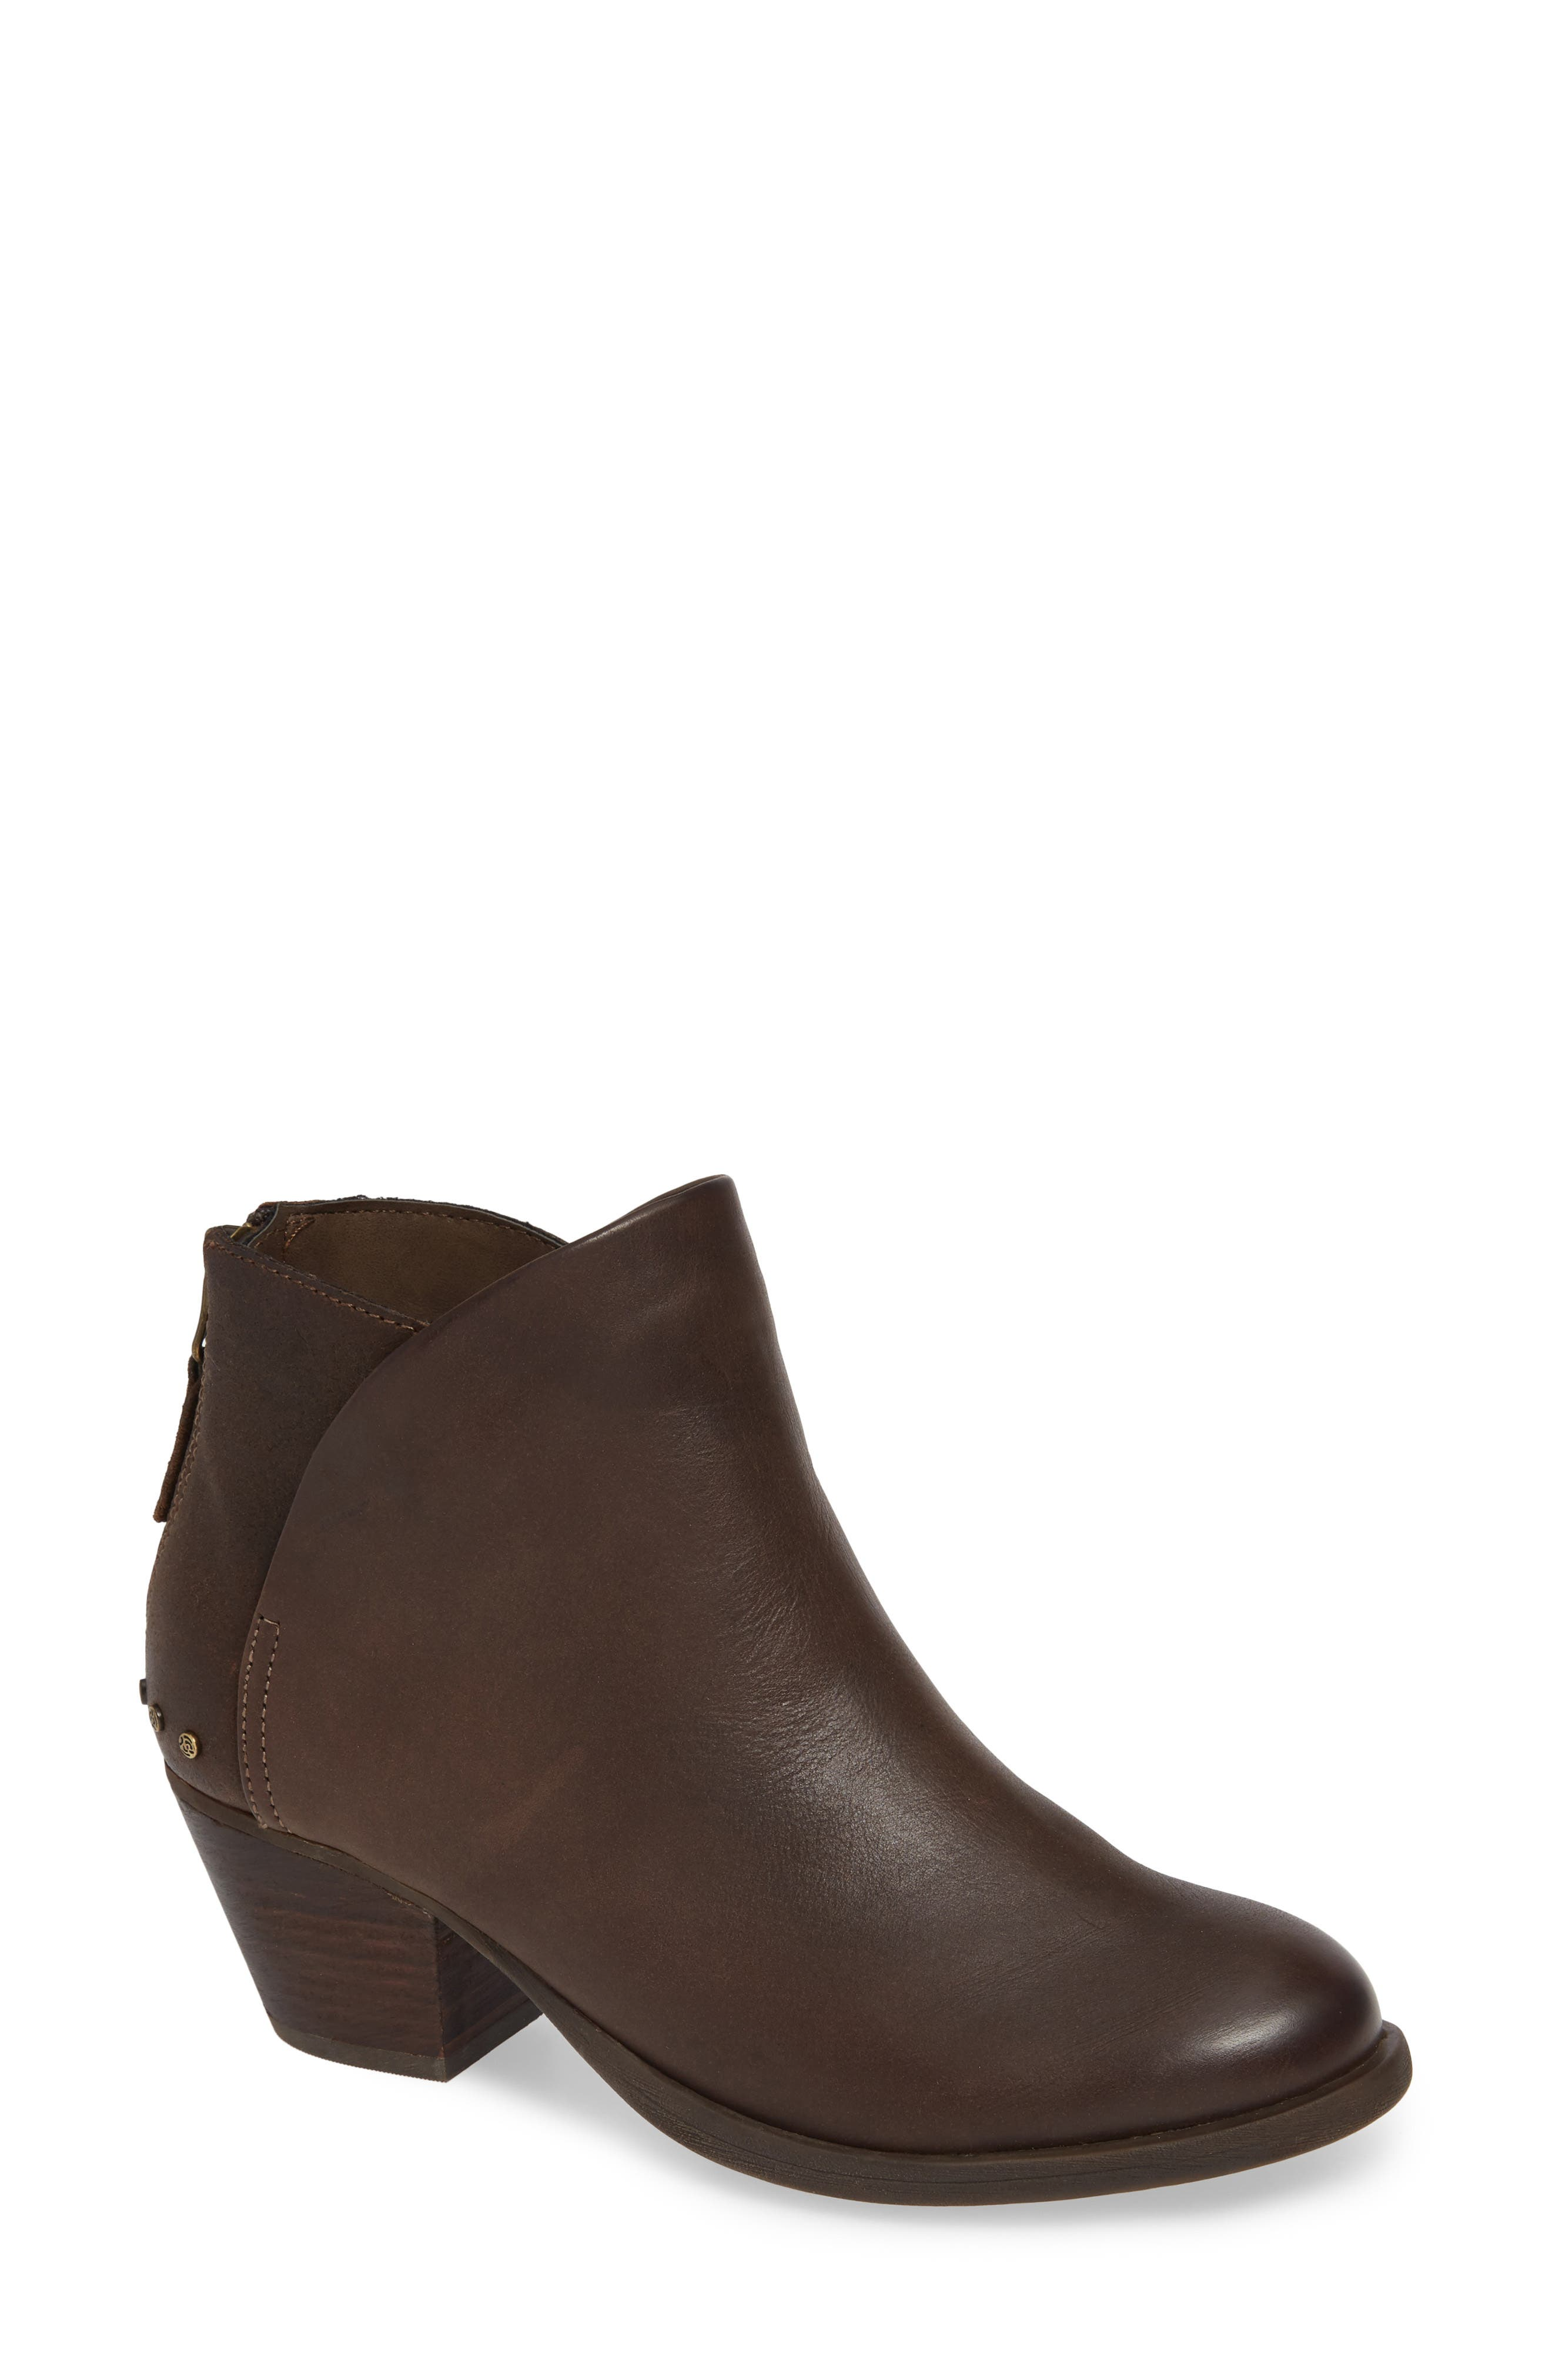 Otbt Compass Bootie, Brown